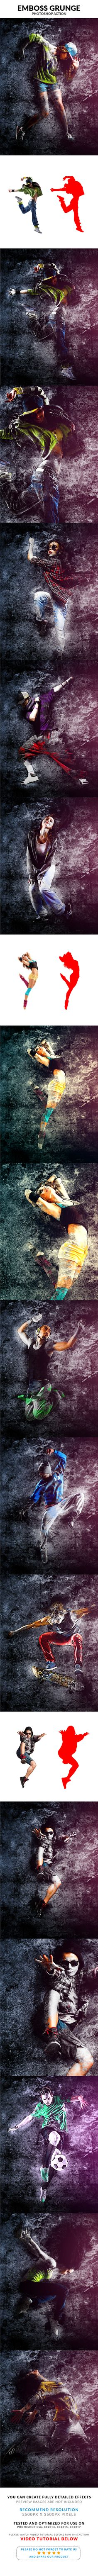 Emboss Grunge Photoshop Action #template #art Download : https://graphicriver.net/item/emboss-grunge-photoshop-action/21200956?ref=pxcr